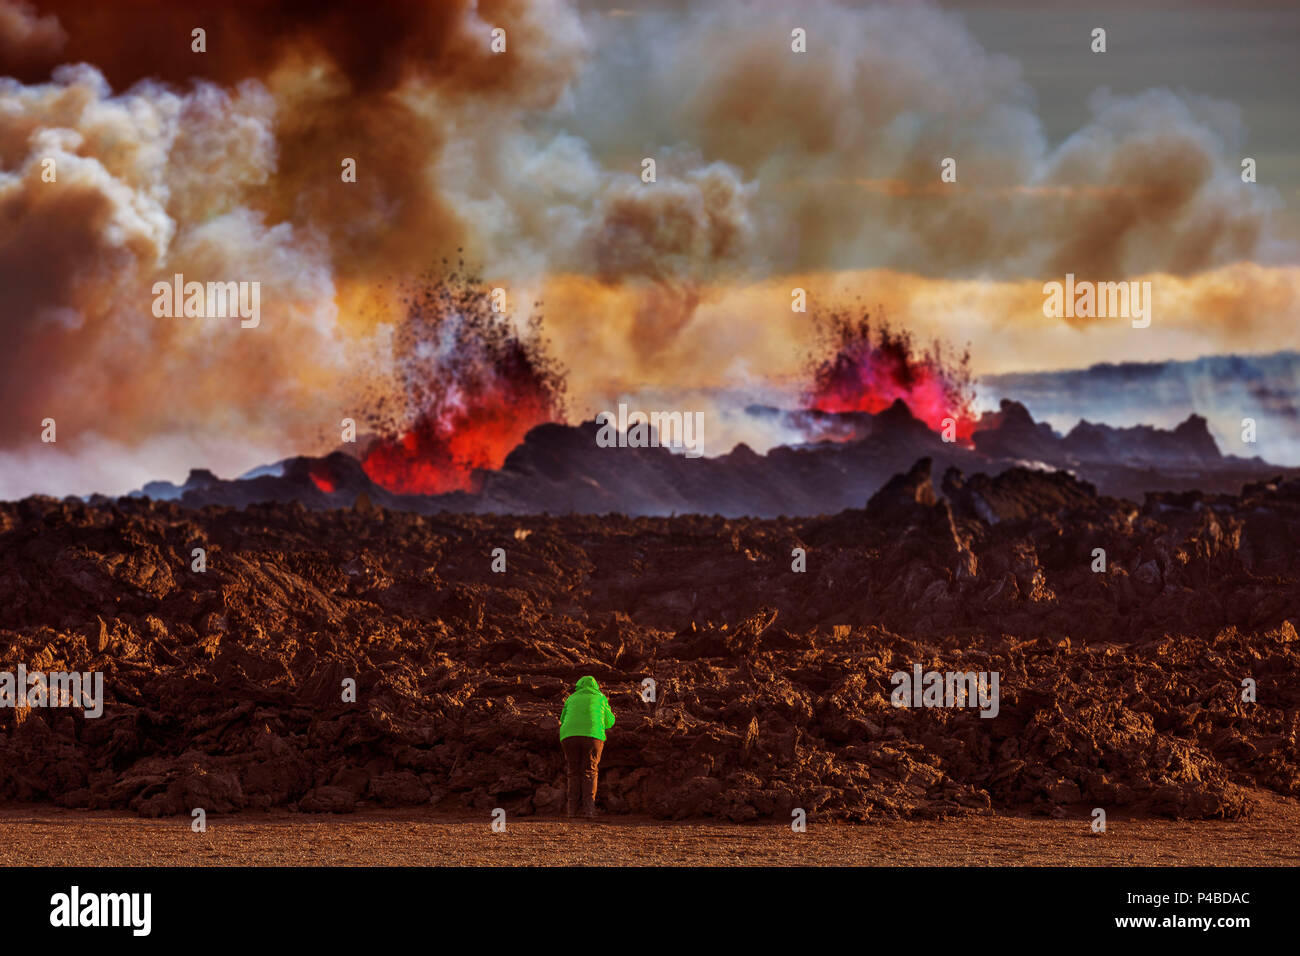 Person close to the new lava. August 29, 2014 a fissure eruption started in Holuhraun at the northern end of a magma intrusion, which had moved progressively north, from the Bardarbunga volcano. Bardarbunga is a stratovolcano located under Vatnajokull, Iceland's most extensive glacier. Picture Date-September 20, 2014 - Stock Image